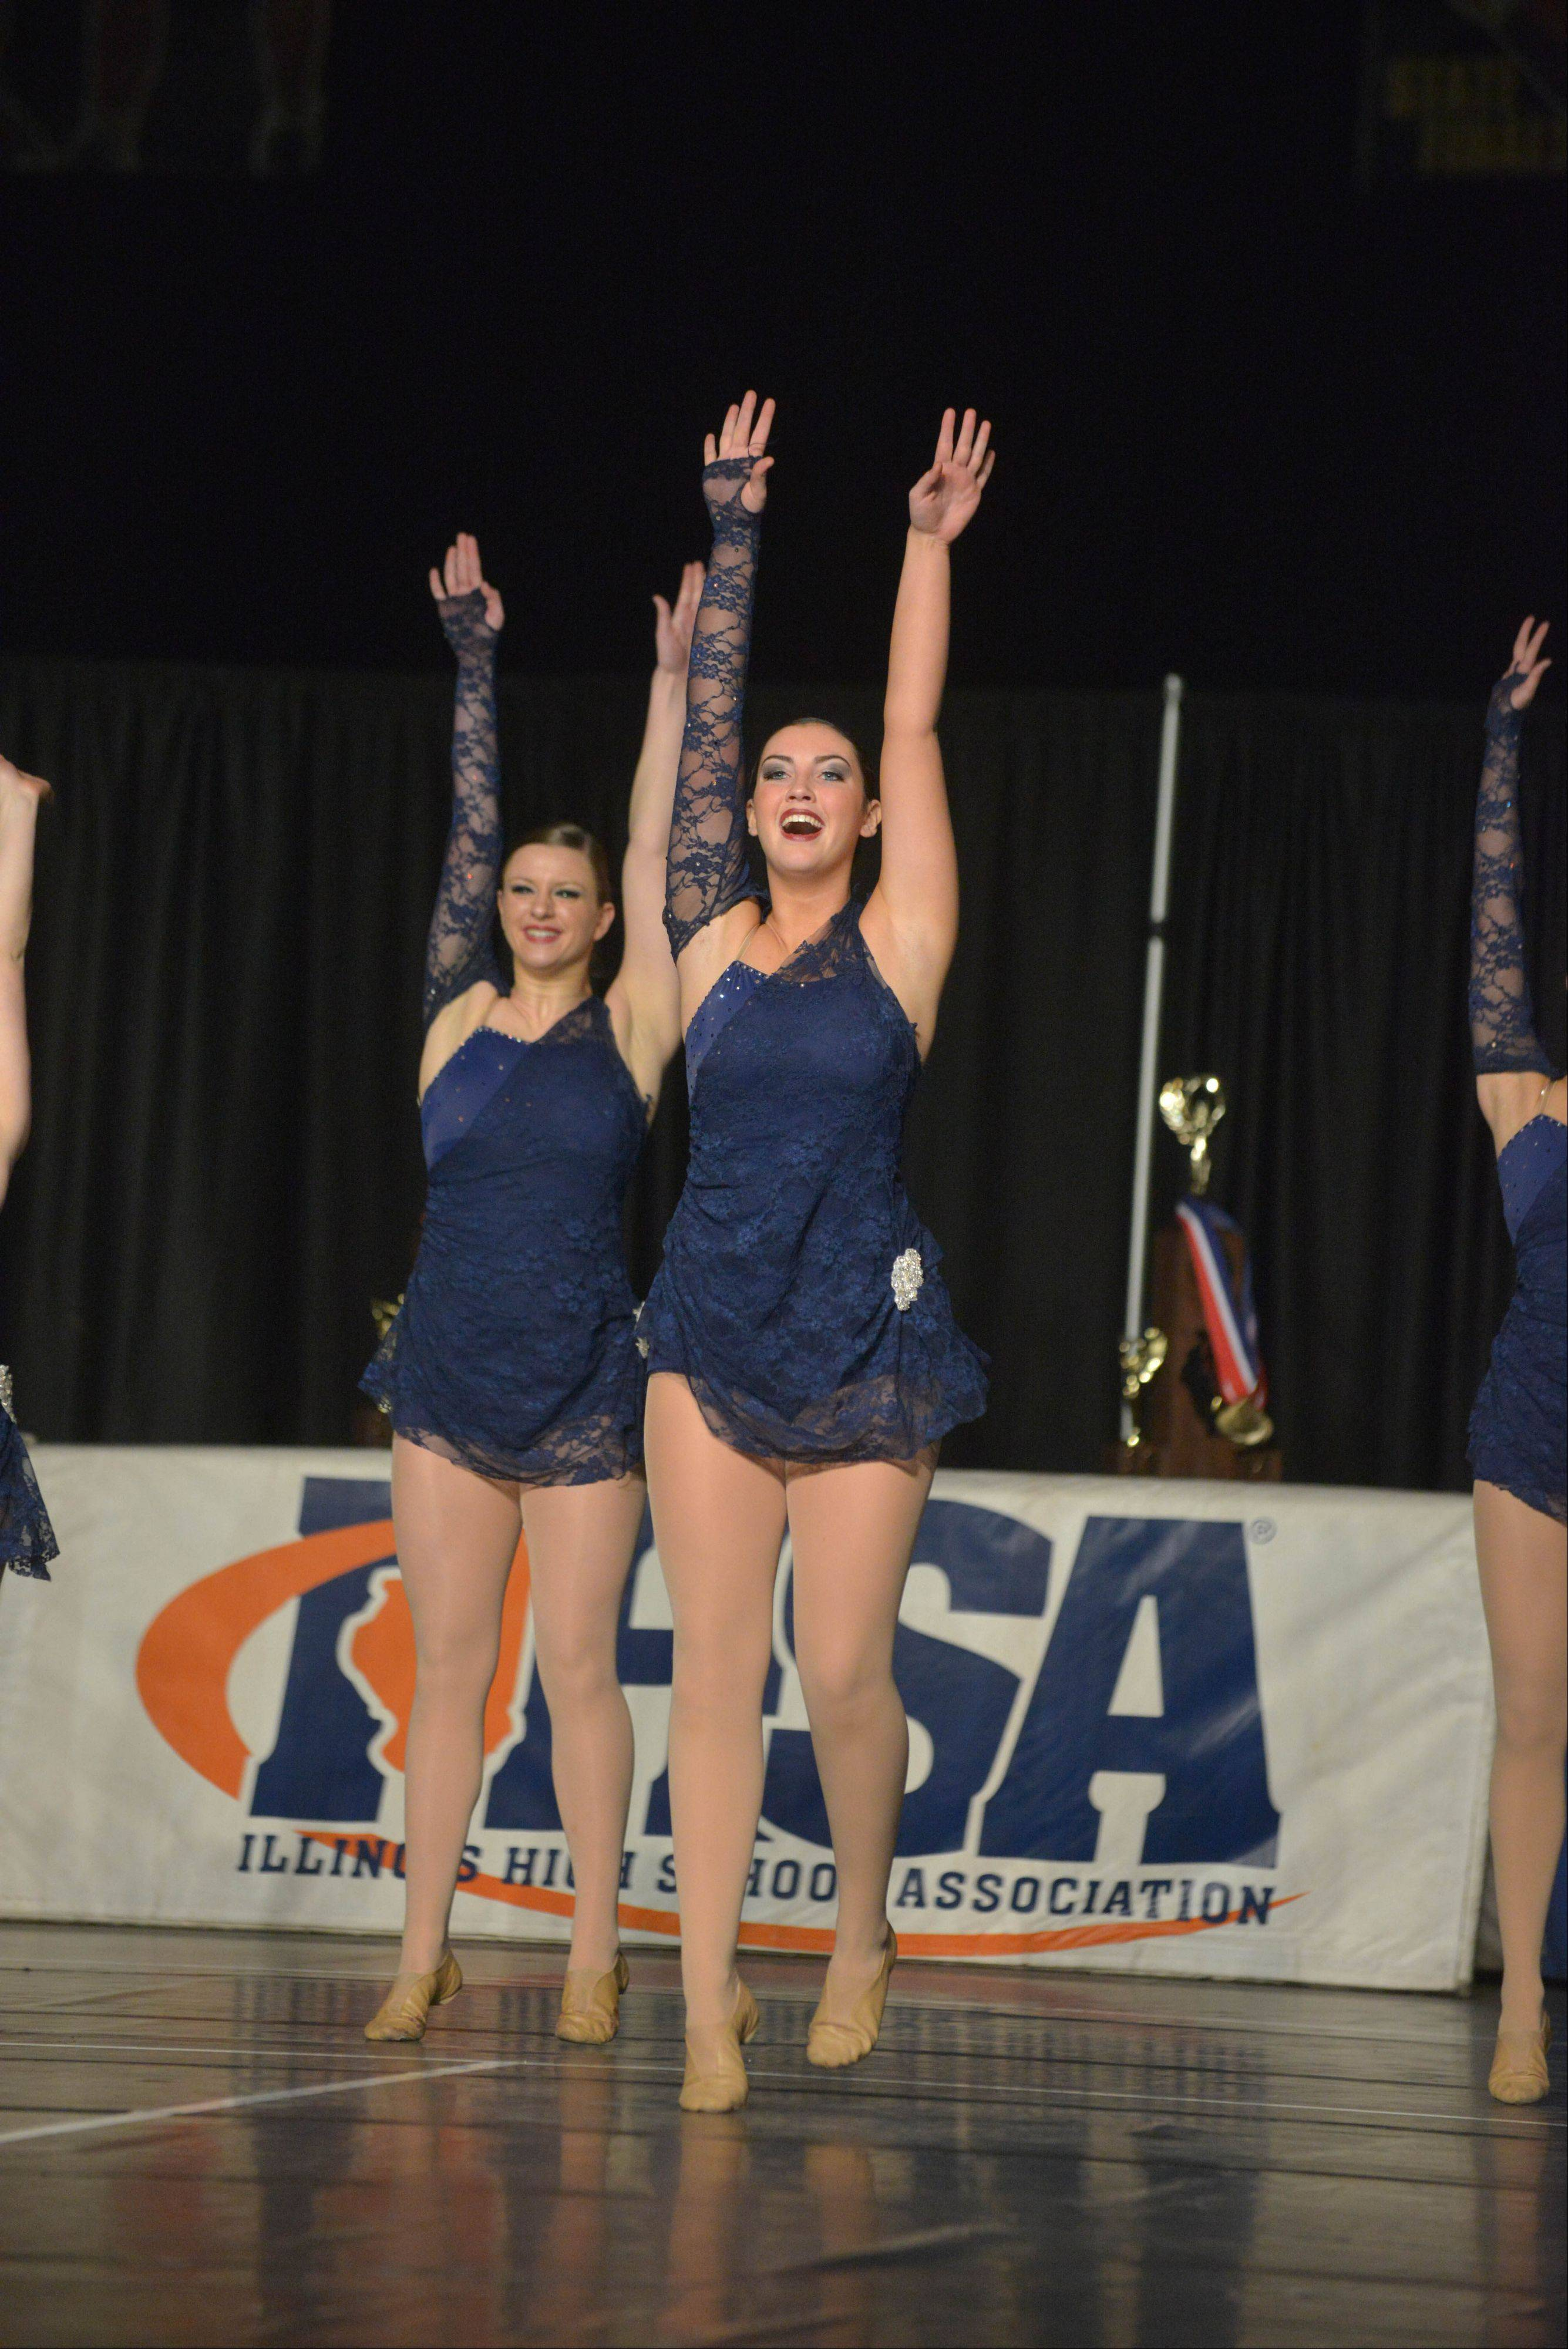 Neuqua Valley High School took part in the IHSA Dance State Final at U.S. Cellular Coliseum in Bloomington Saturday. 90 teams vied for state champion at this event.